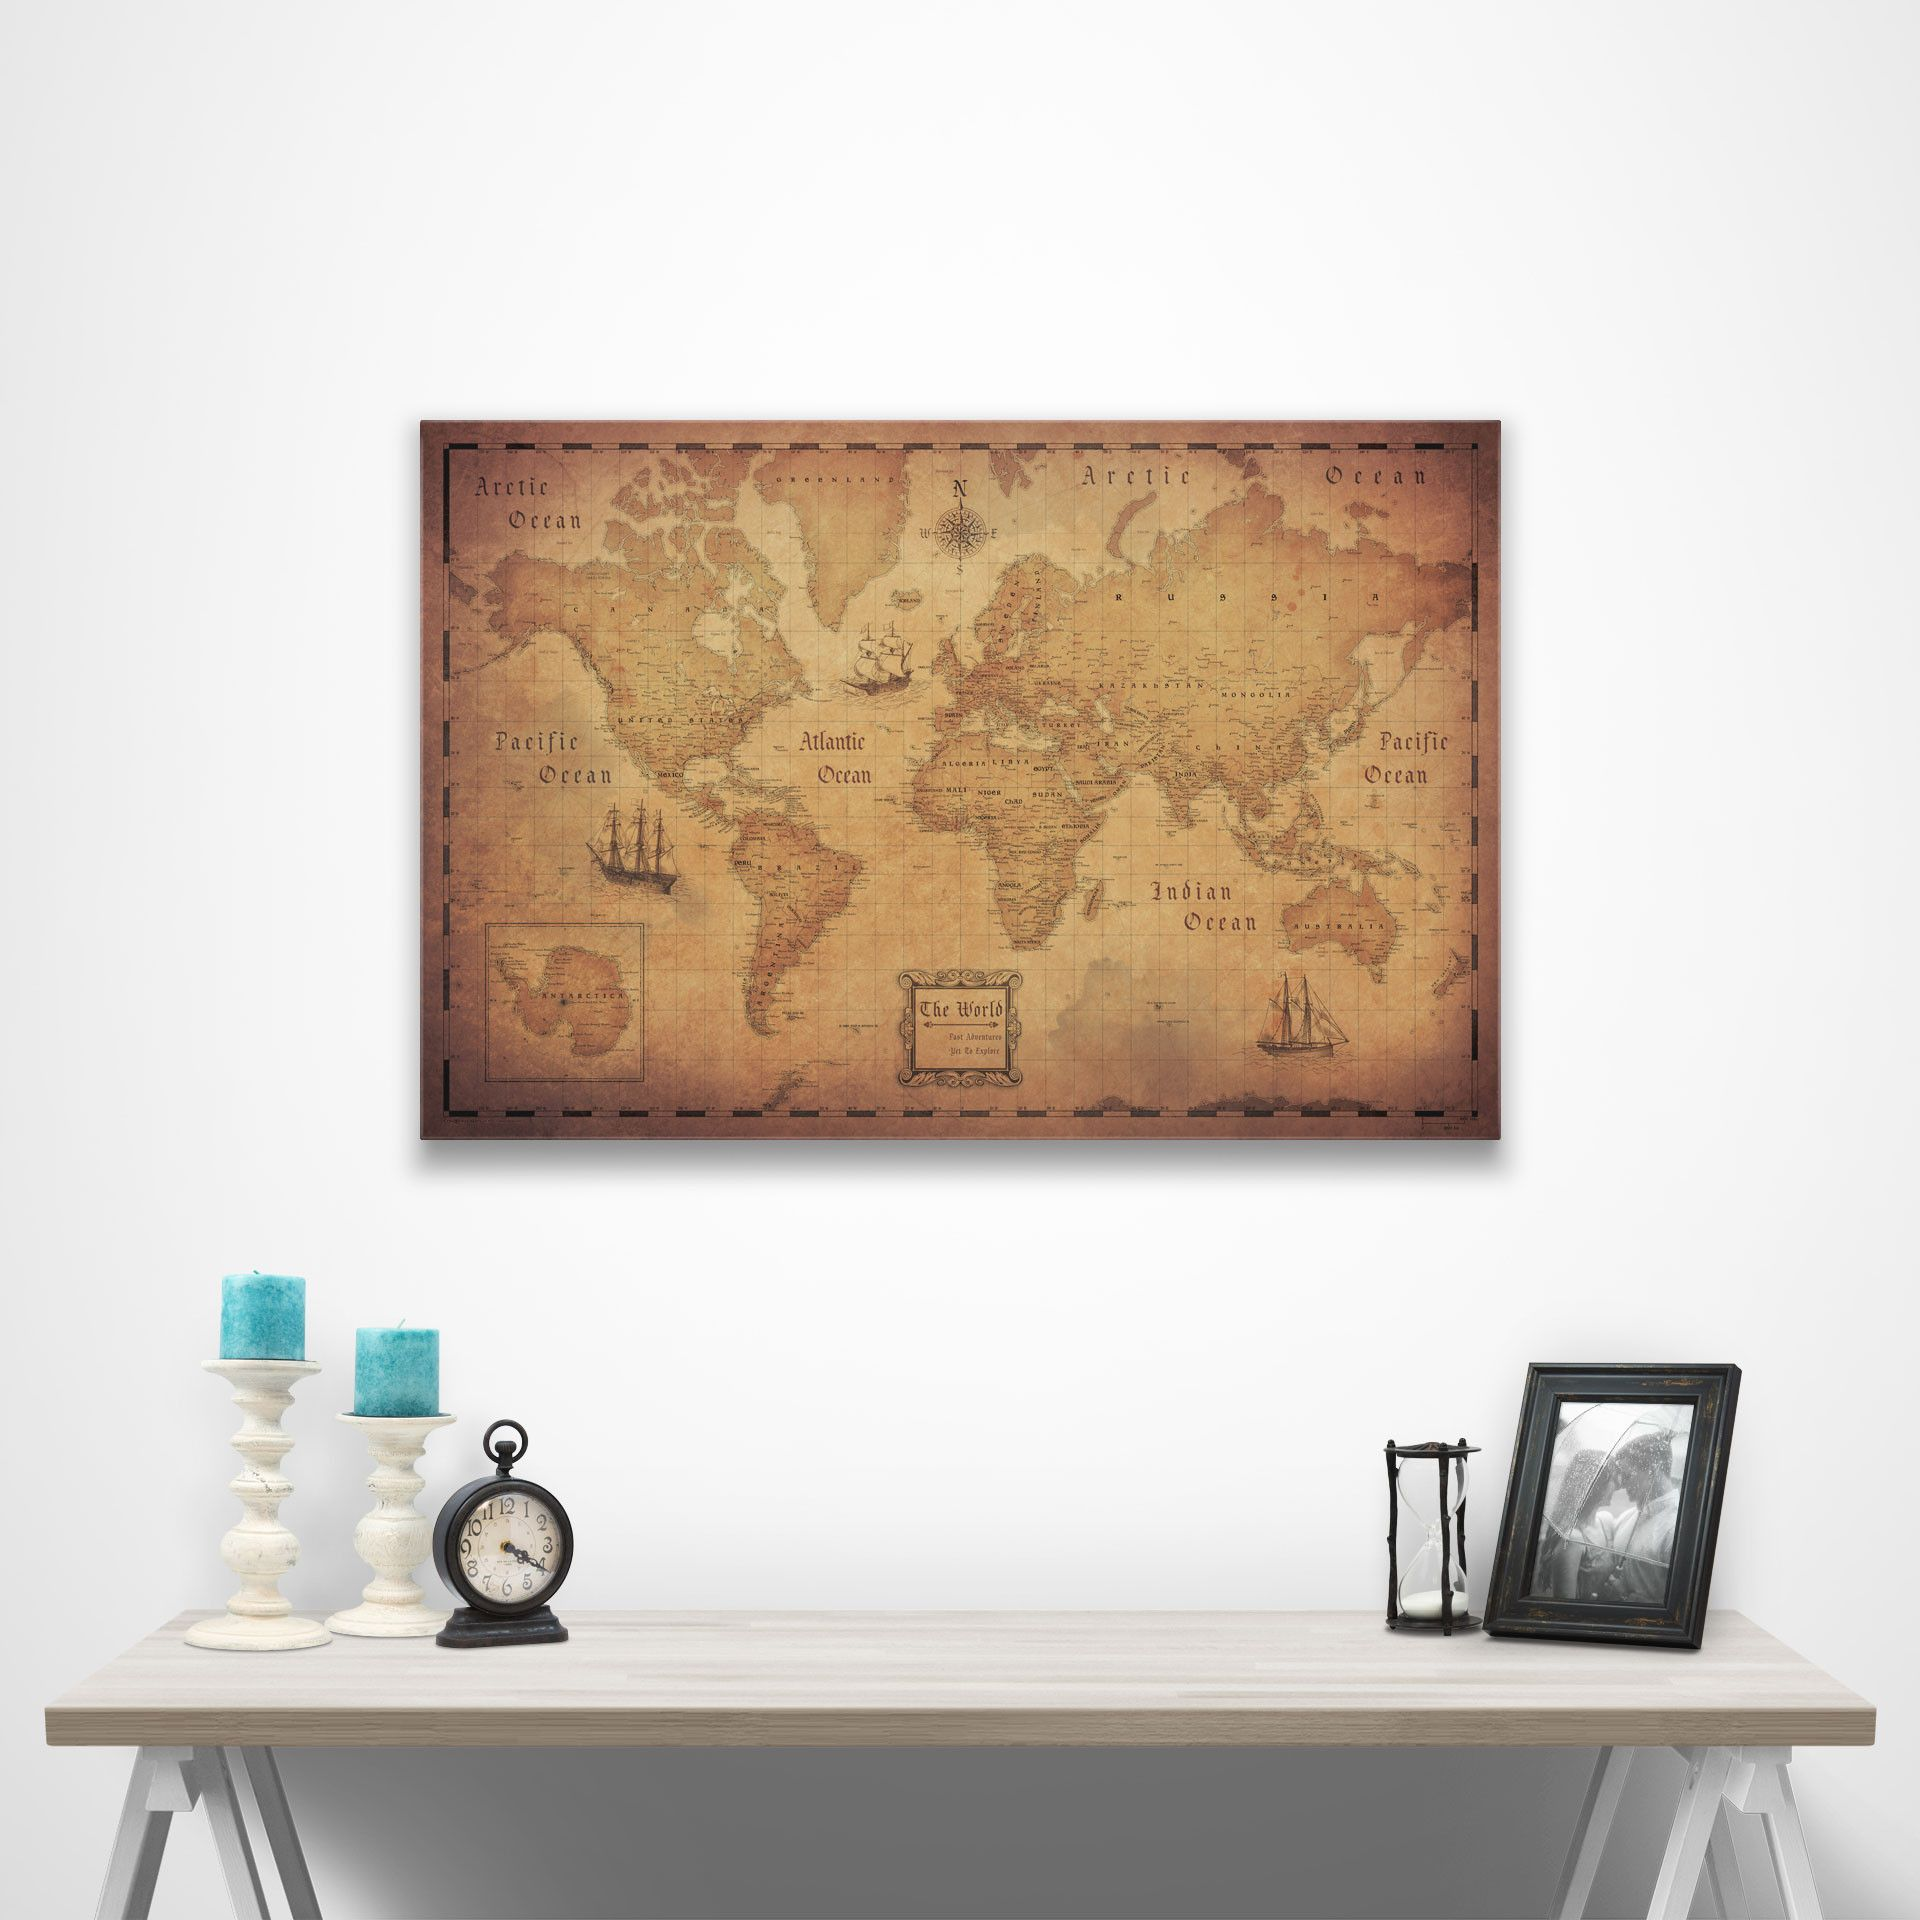 World travel map pin board wpush pins golden aged pin boards world travel map pin board wpush pins golden aged gumiabroncs Image collections